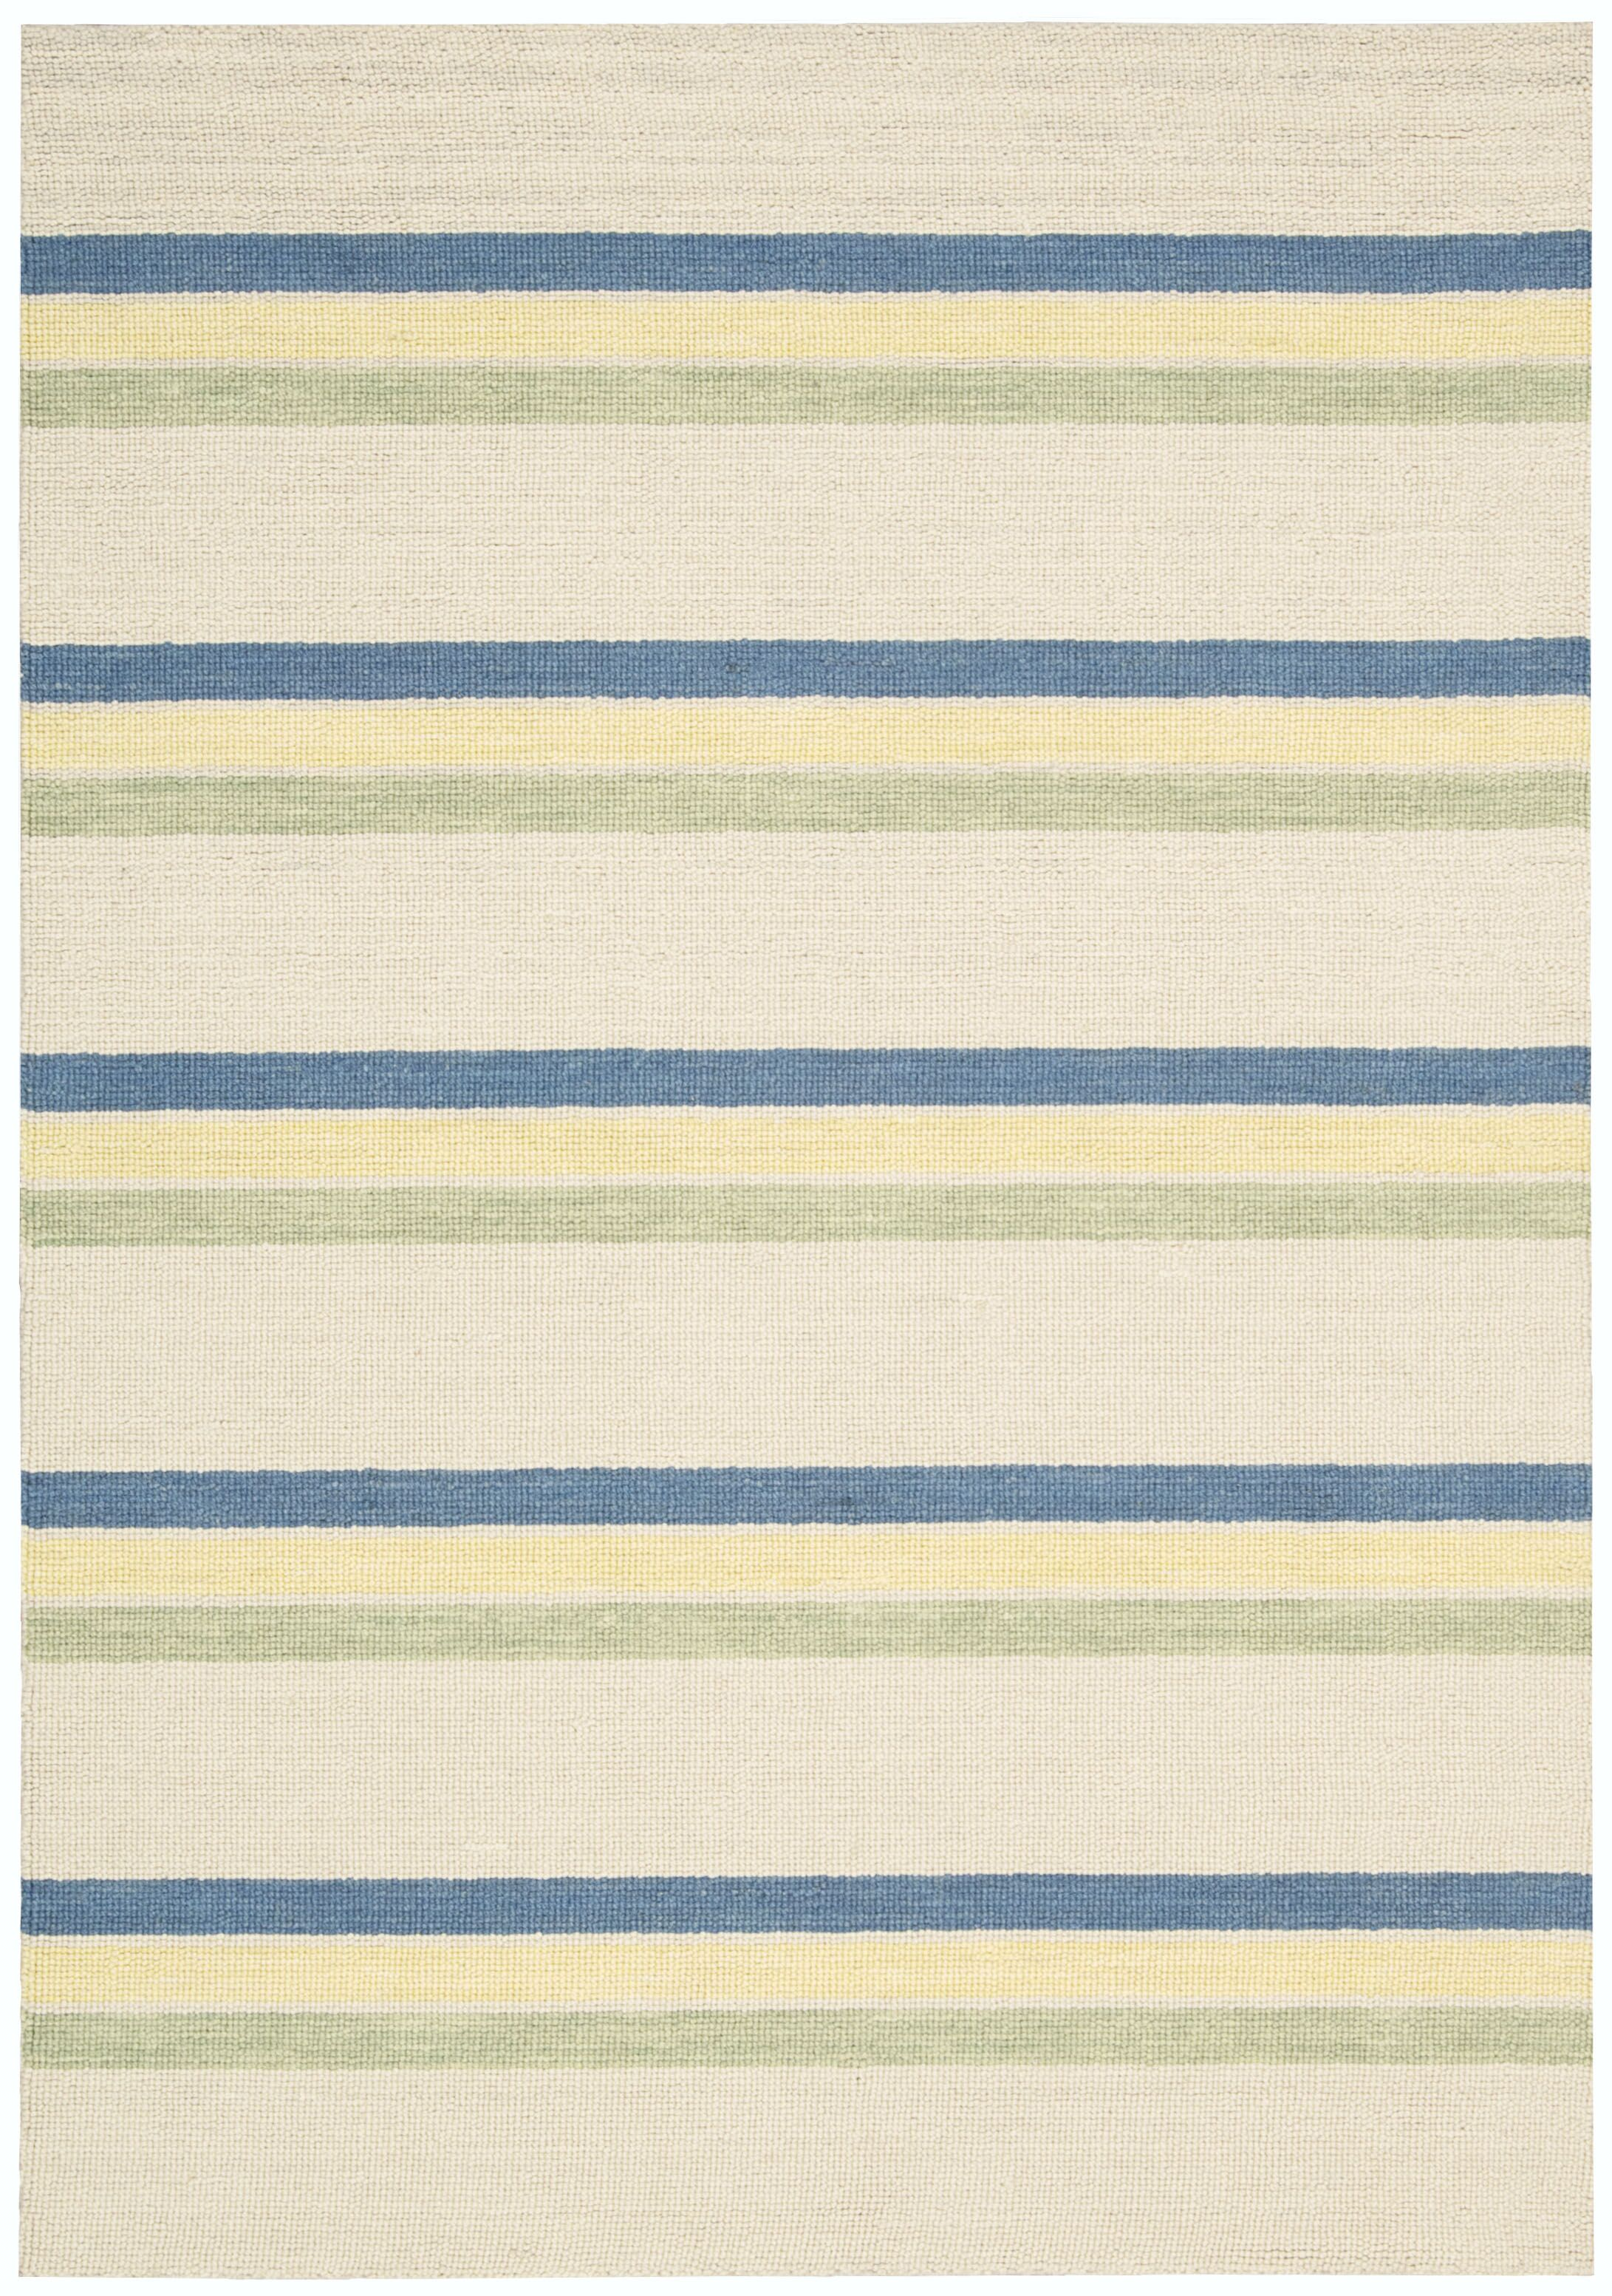 Manford Hand-Woven Cottonwood Area Rug Rug Size: Runner 2'3